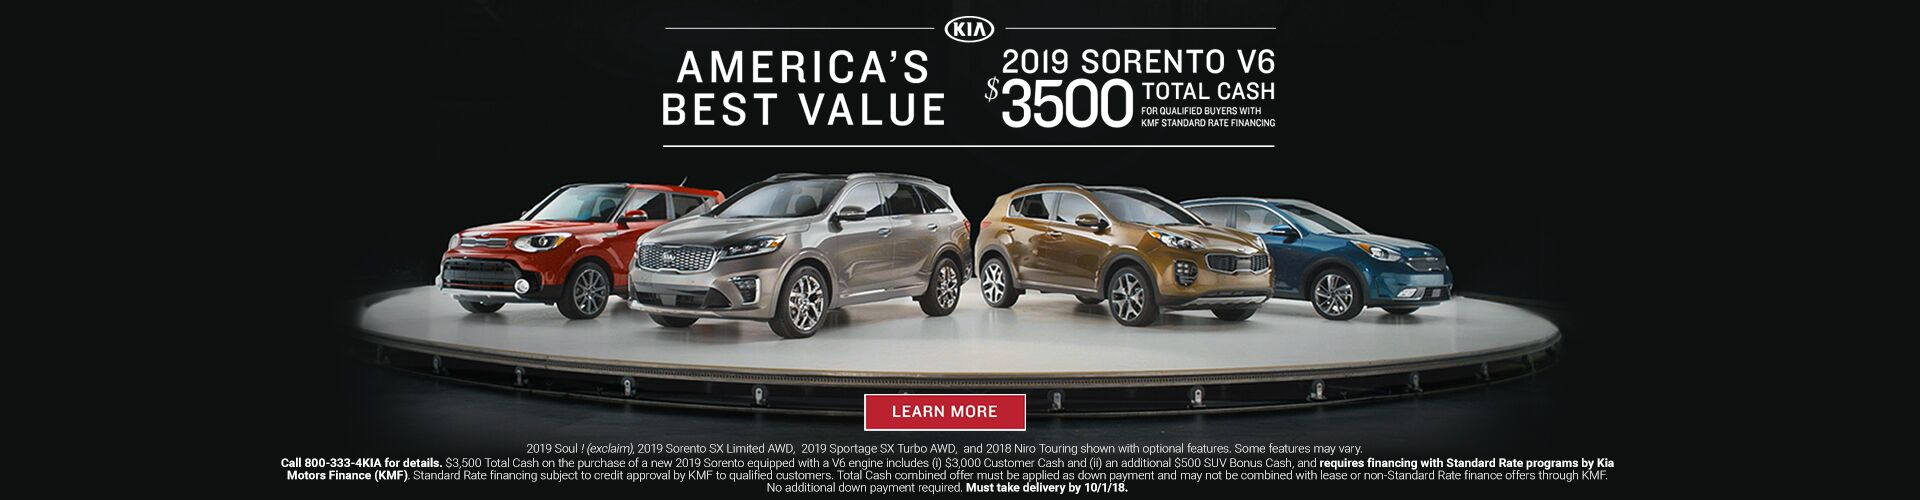 America's Best Value 2019 Sorento Value Kia